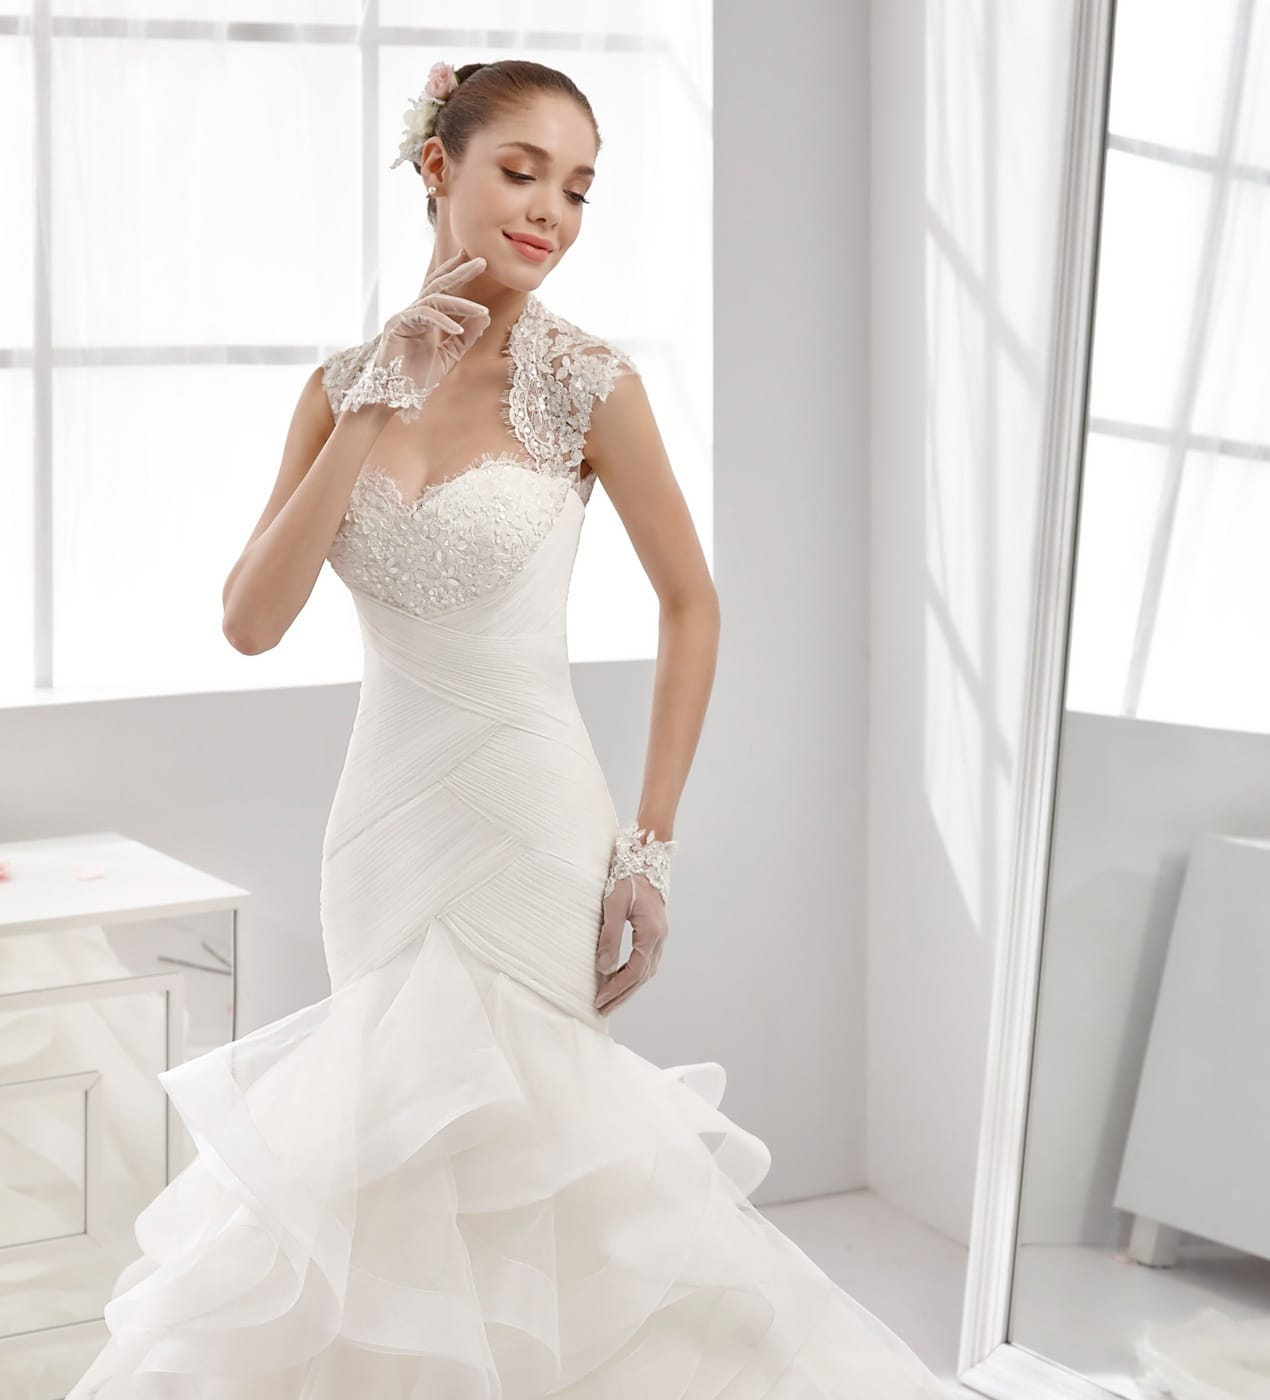 Nicole spose aurora dress sell my wedding dress online for Selling your wedding dress